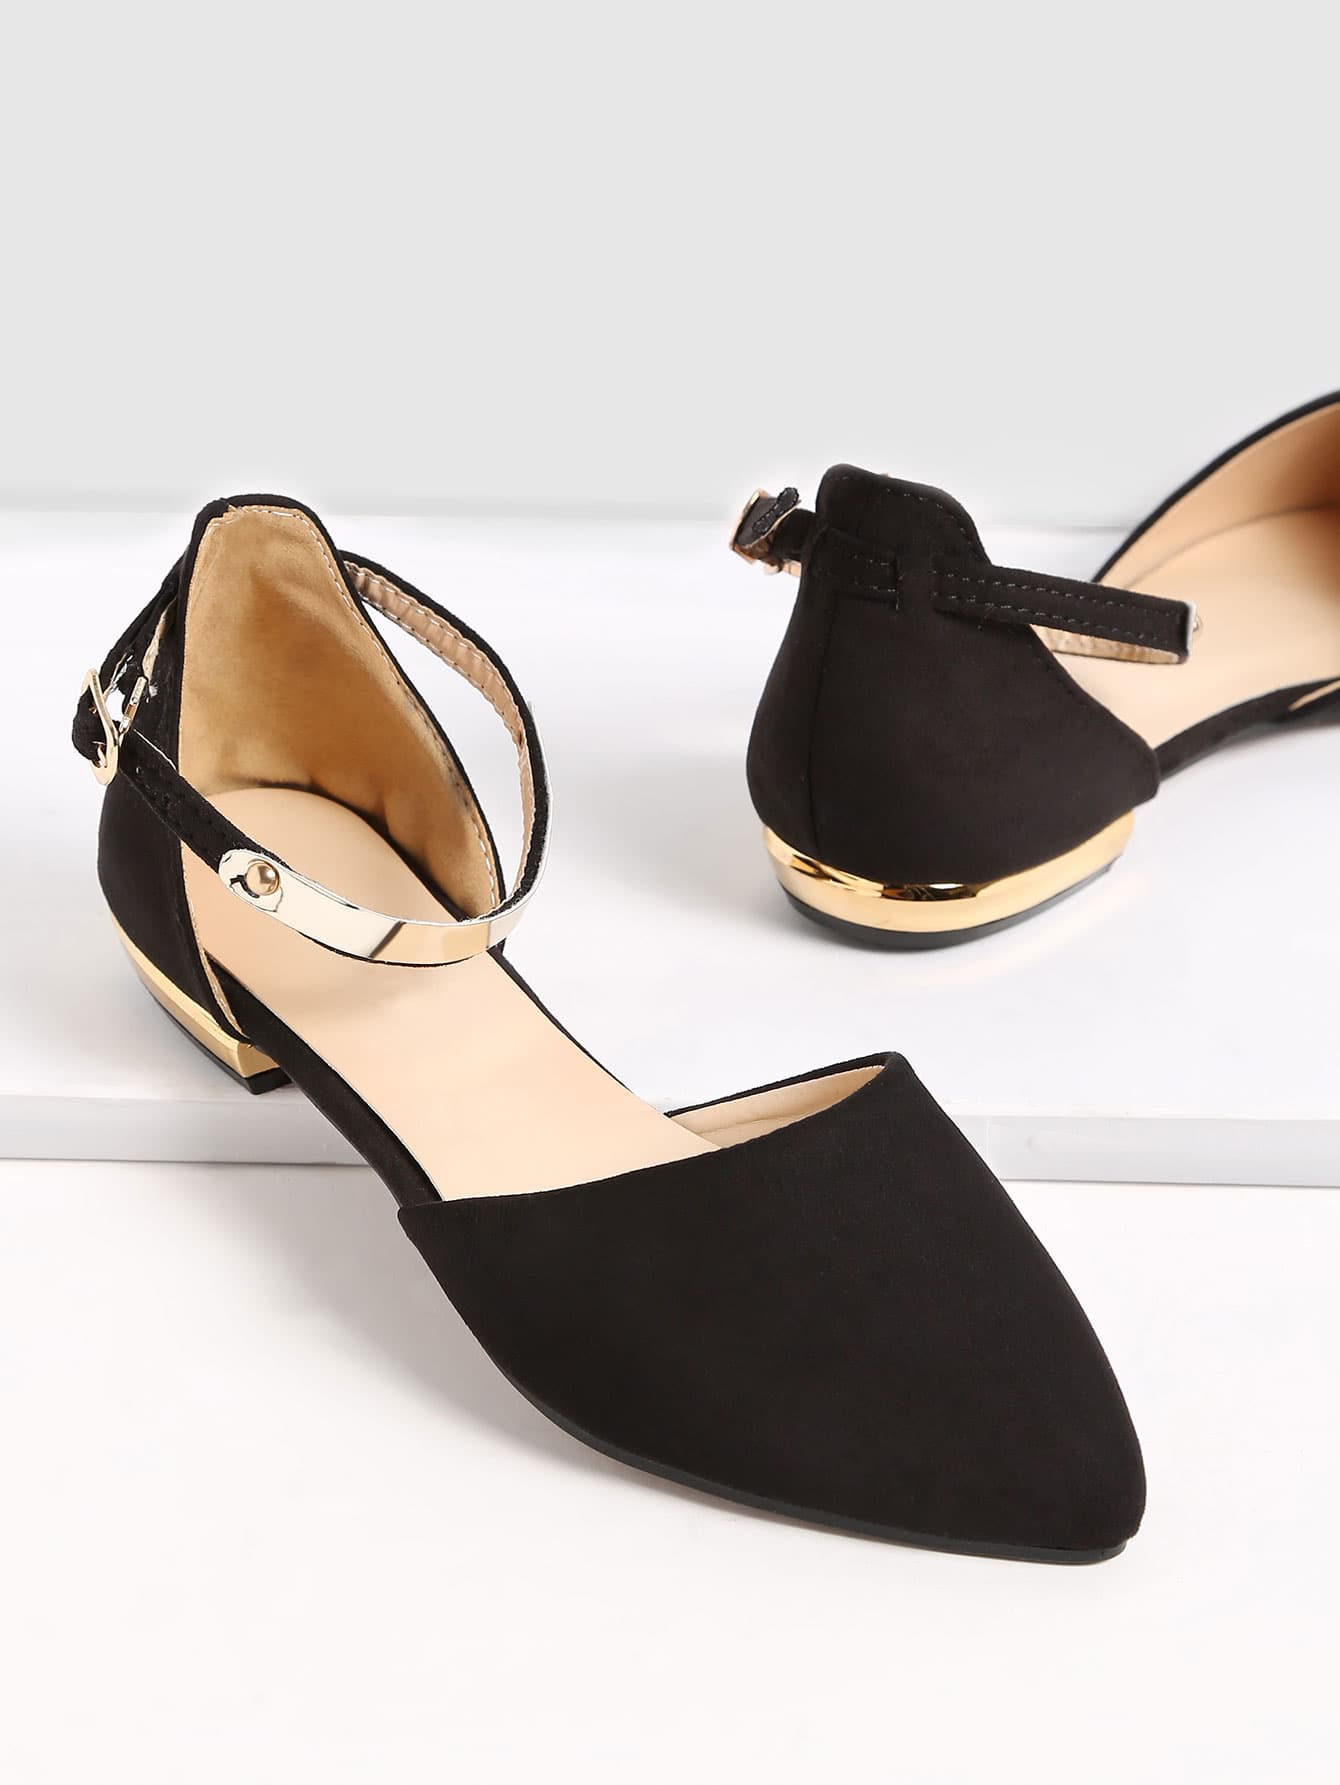 flat black point toe shoe with gold heel detail